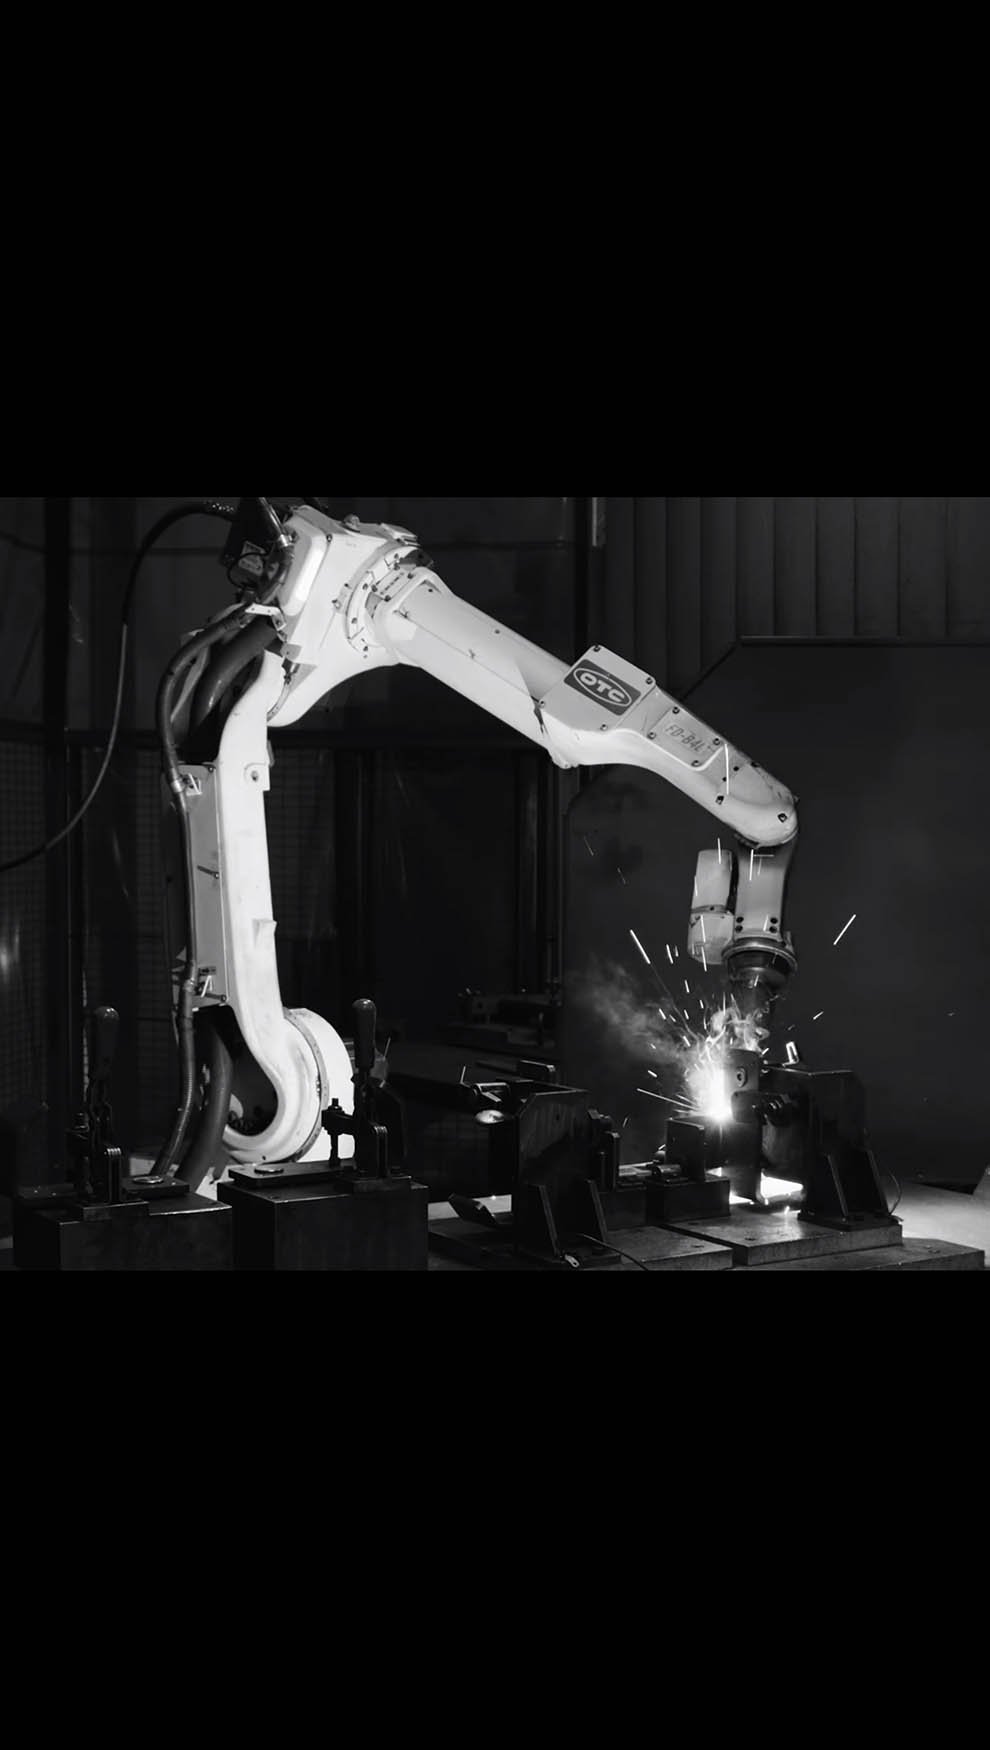 Robot Welding Video Still